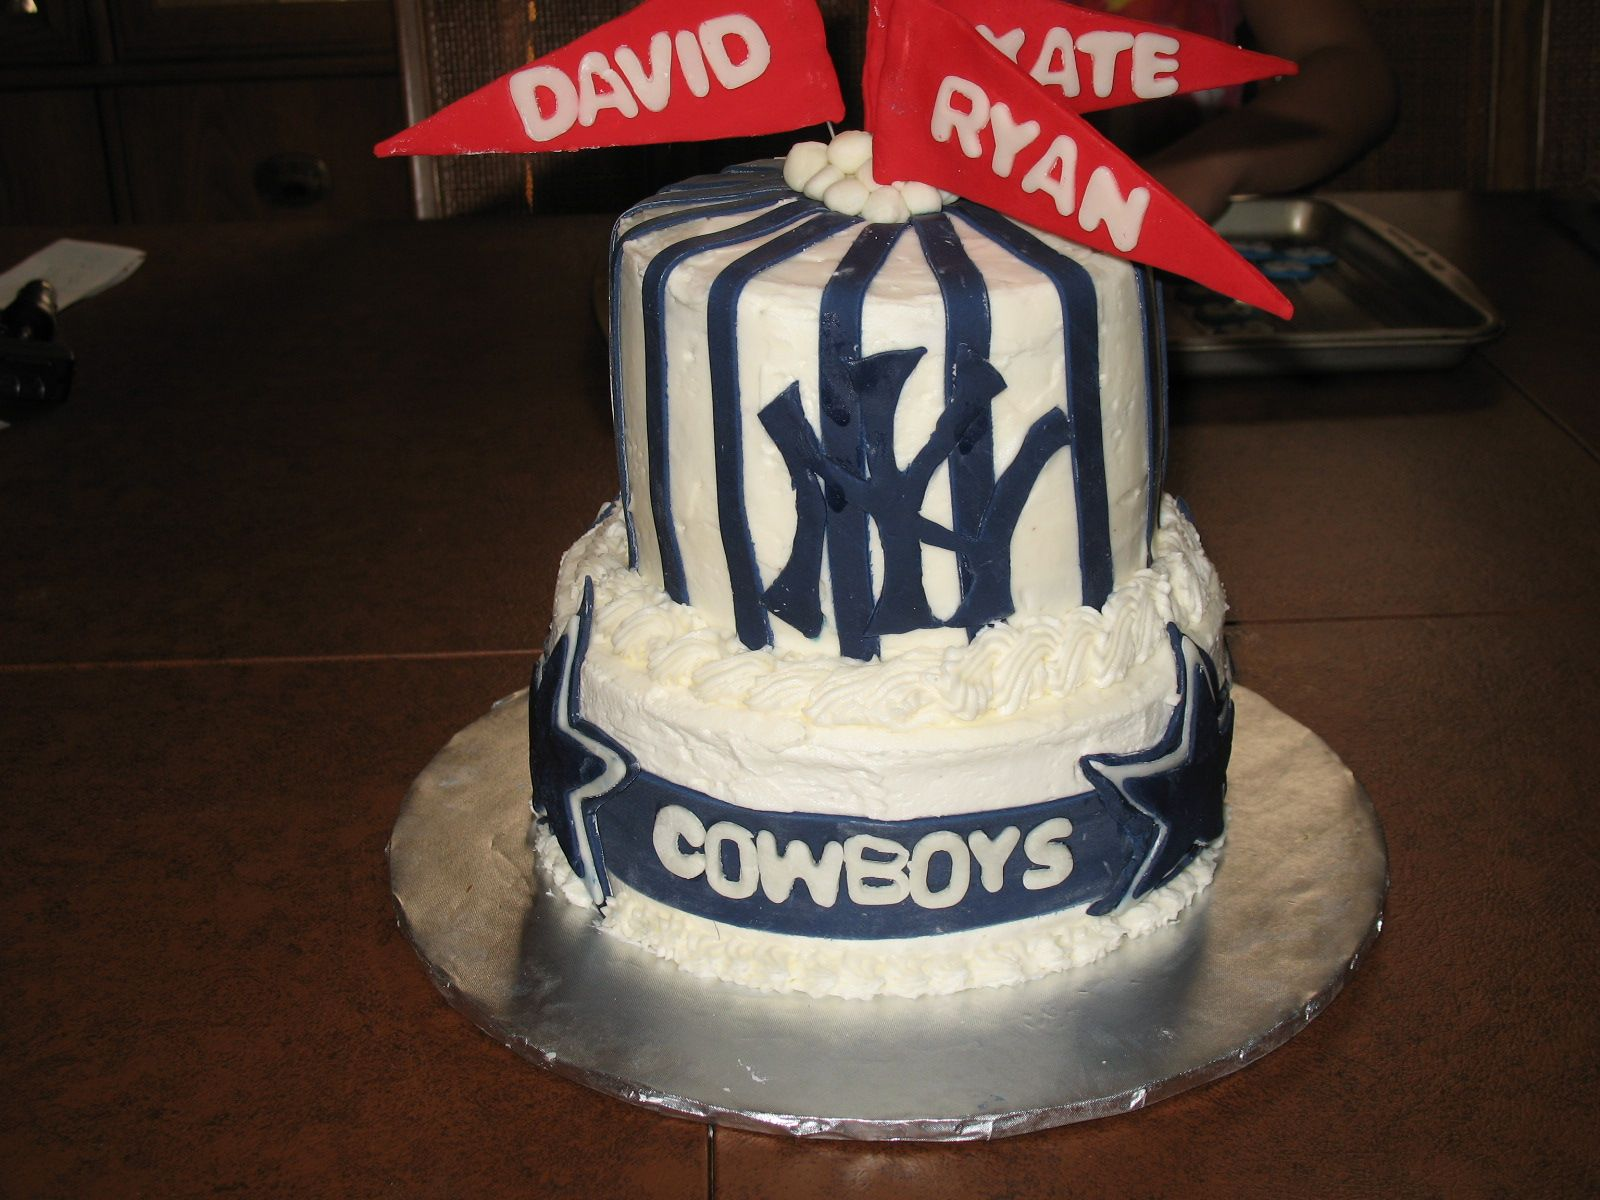 DALLAS COWBOYS 50TH BIRTHDAY CAKES